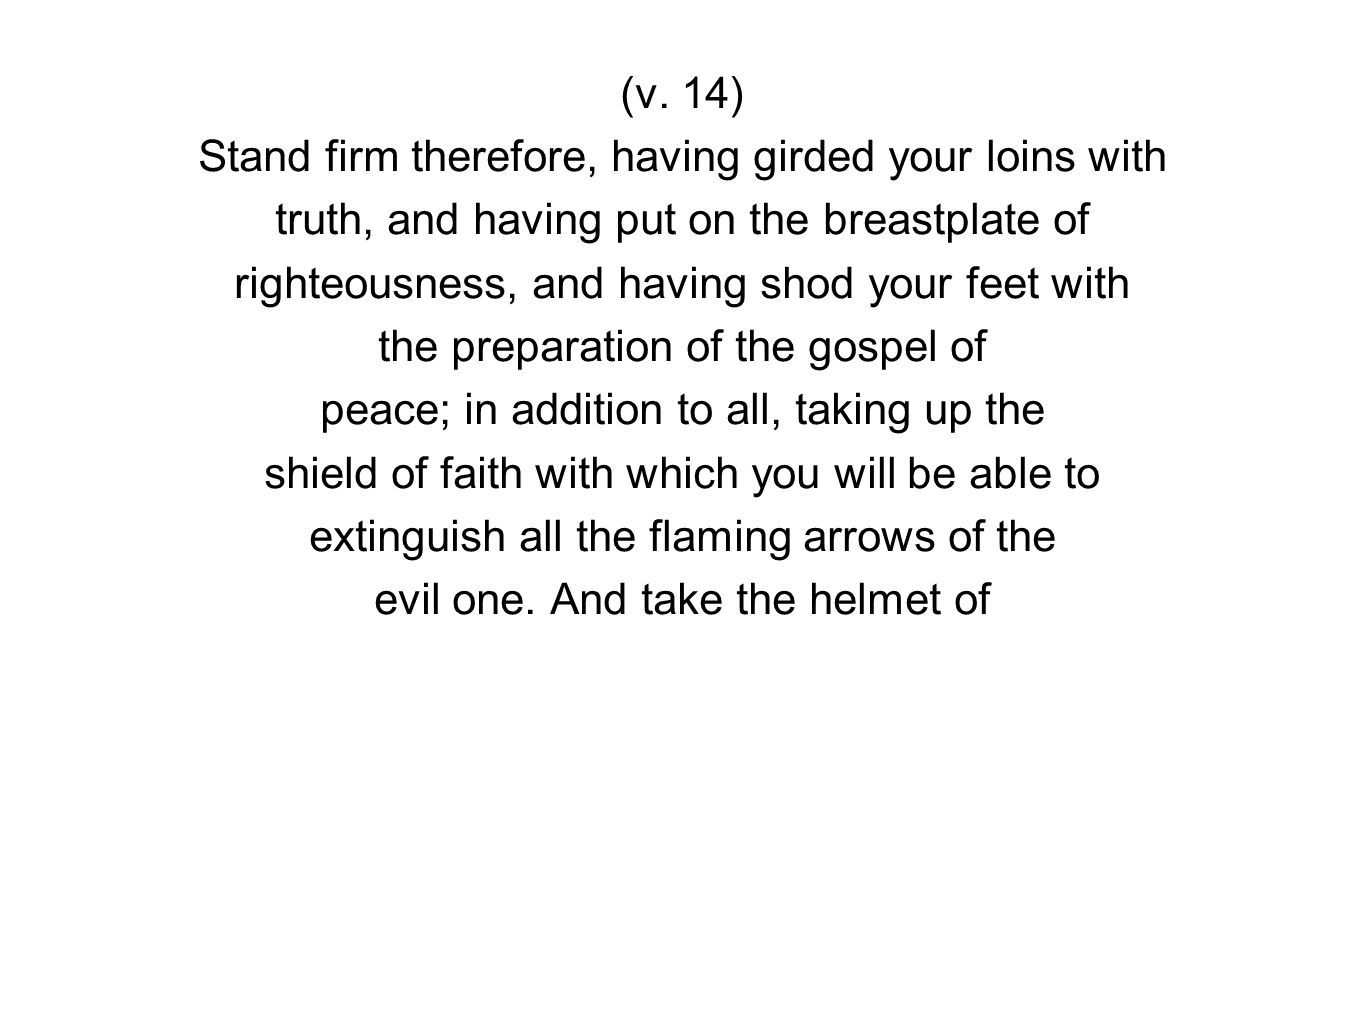 (v. 14) Stand firm therefore, having girded your loins with truth, and having put on the breastplate of righteousness, and having shod your feet with